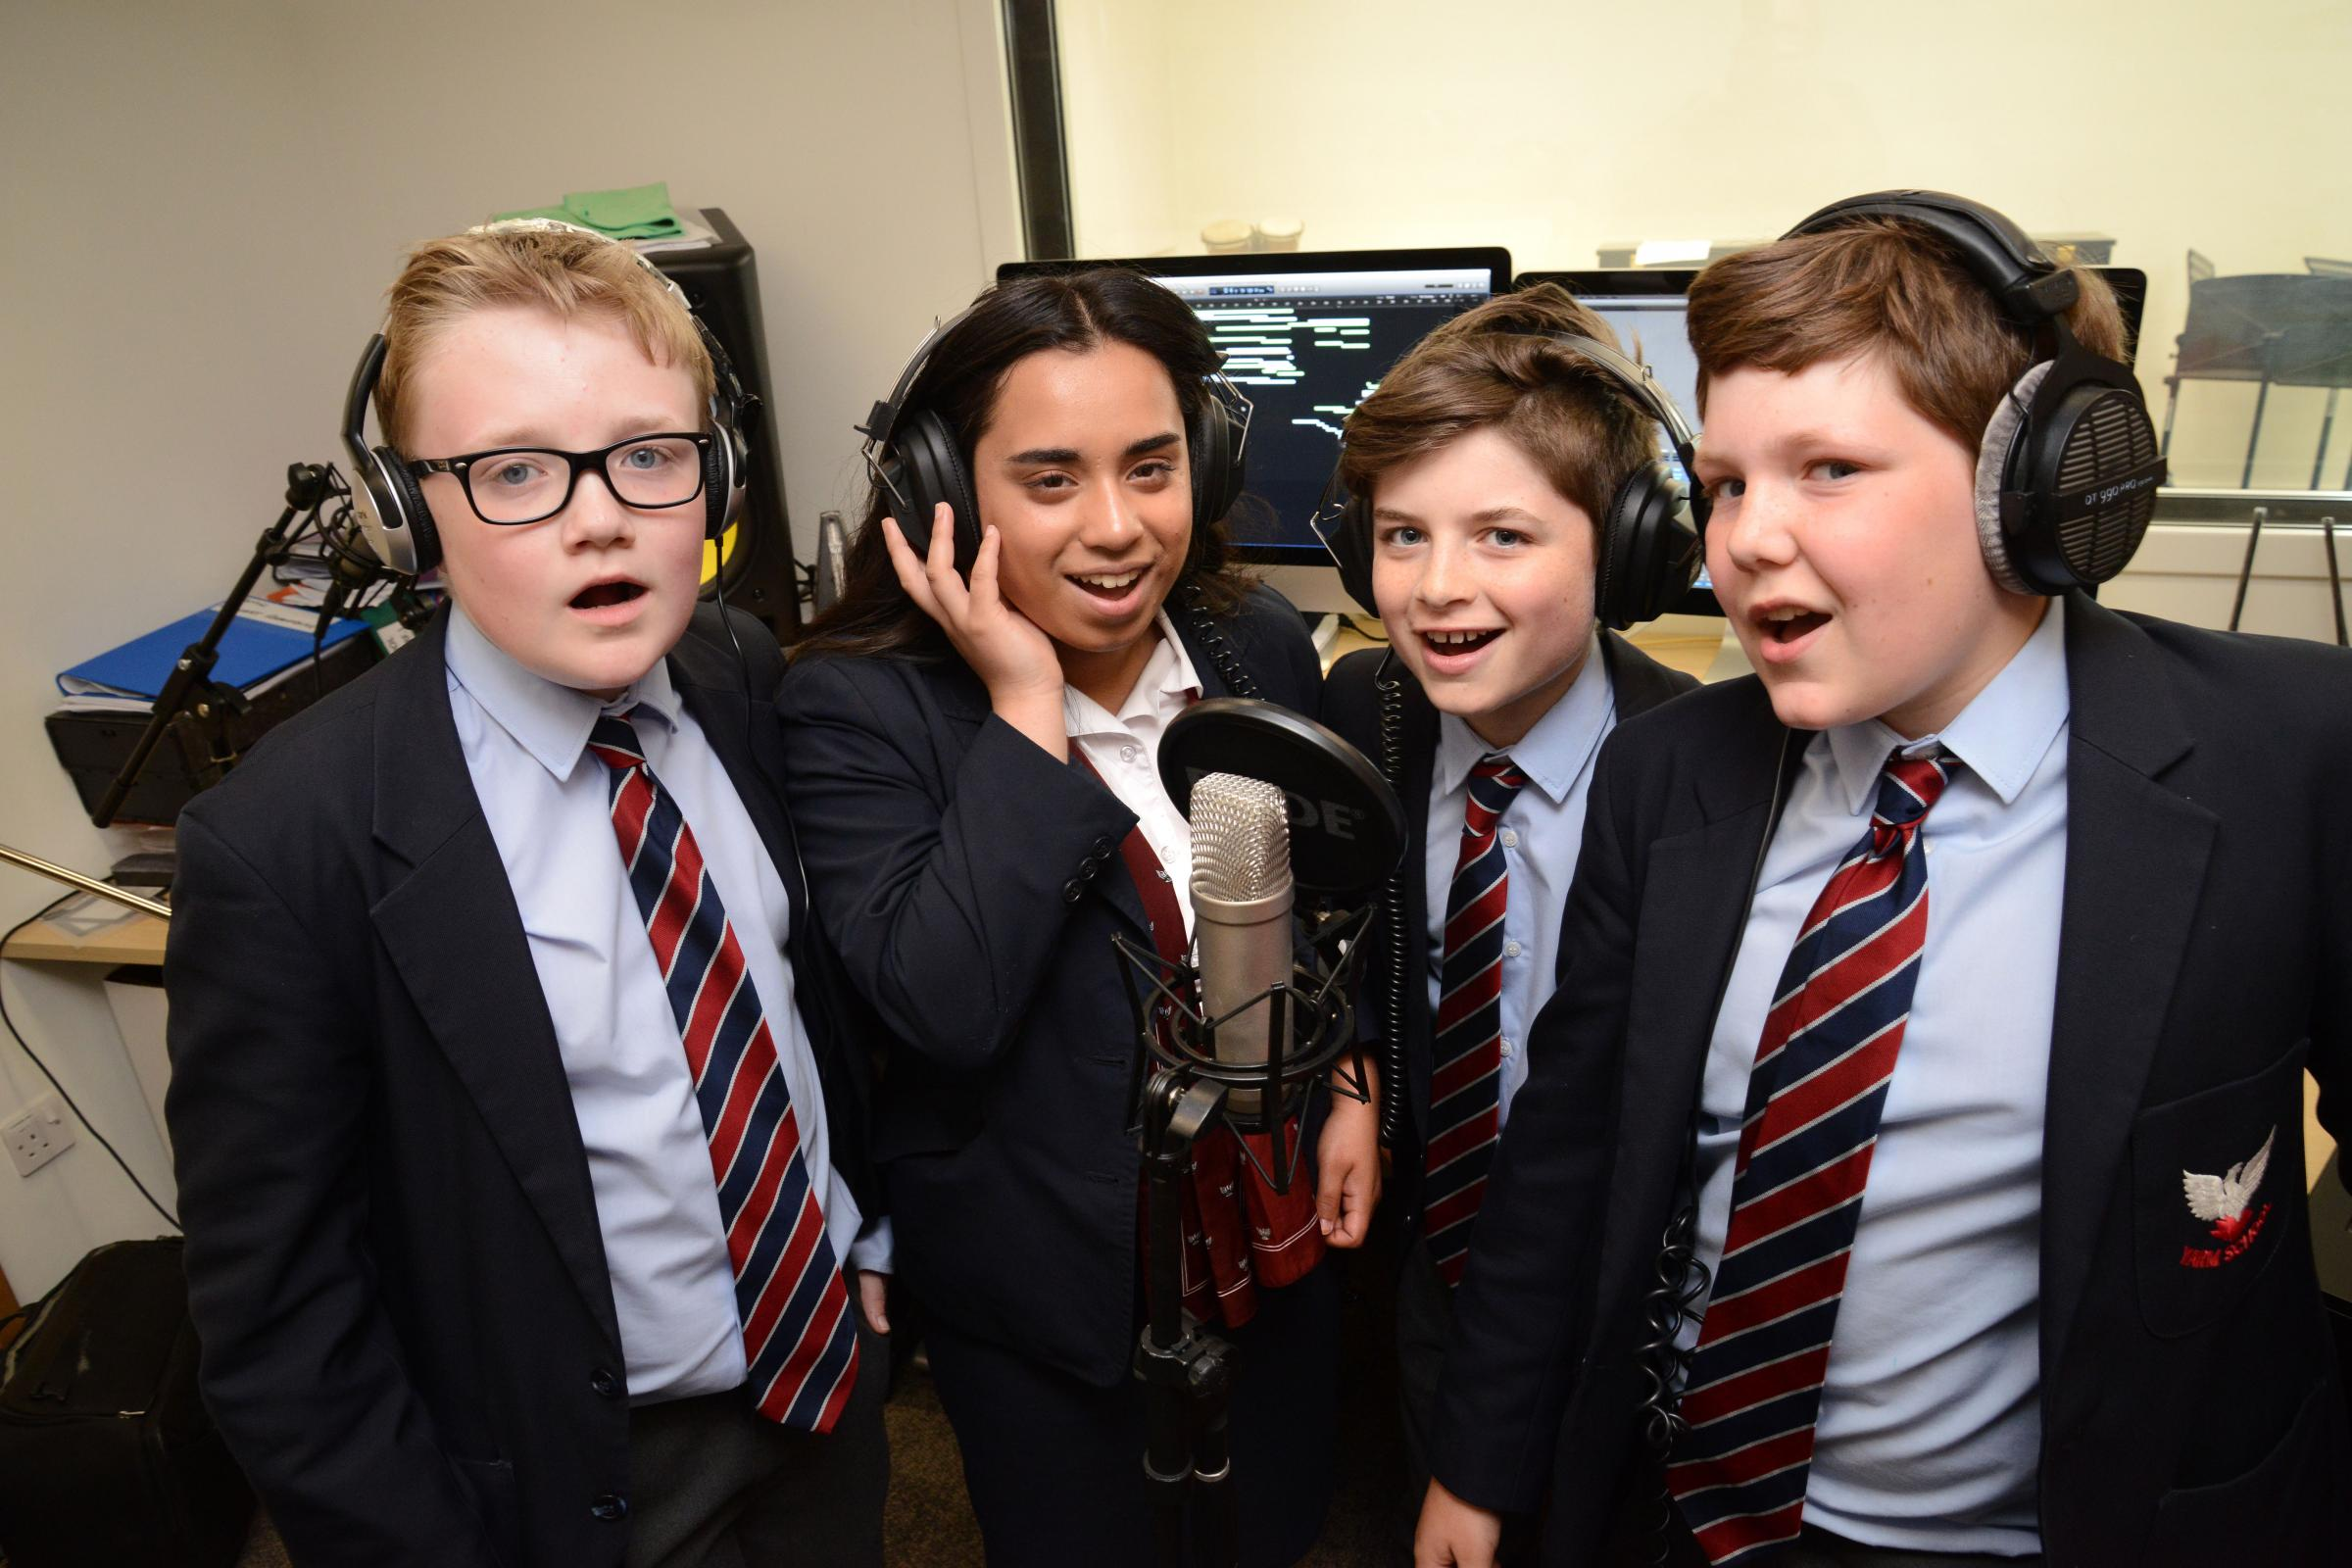 From left, Yarm School Charity Choir members Luke Porter, Jasmine Hoque, Callum Sanderson and Danny Scott